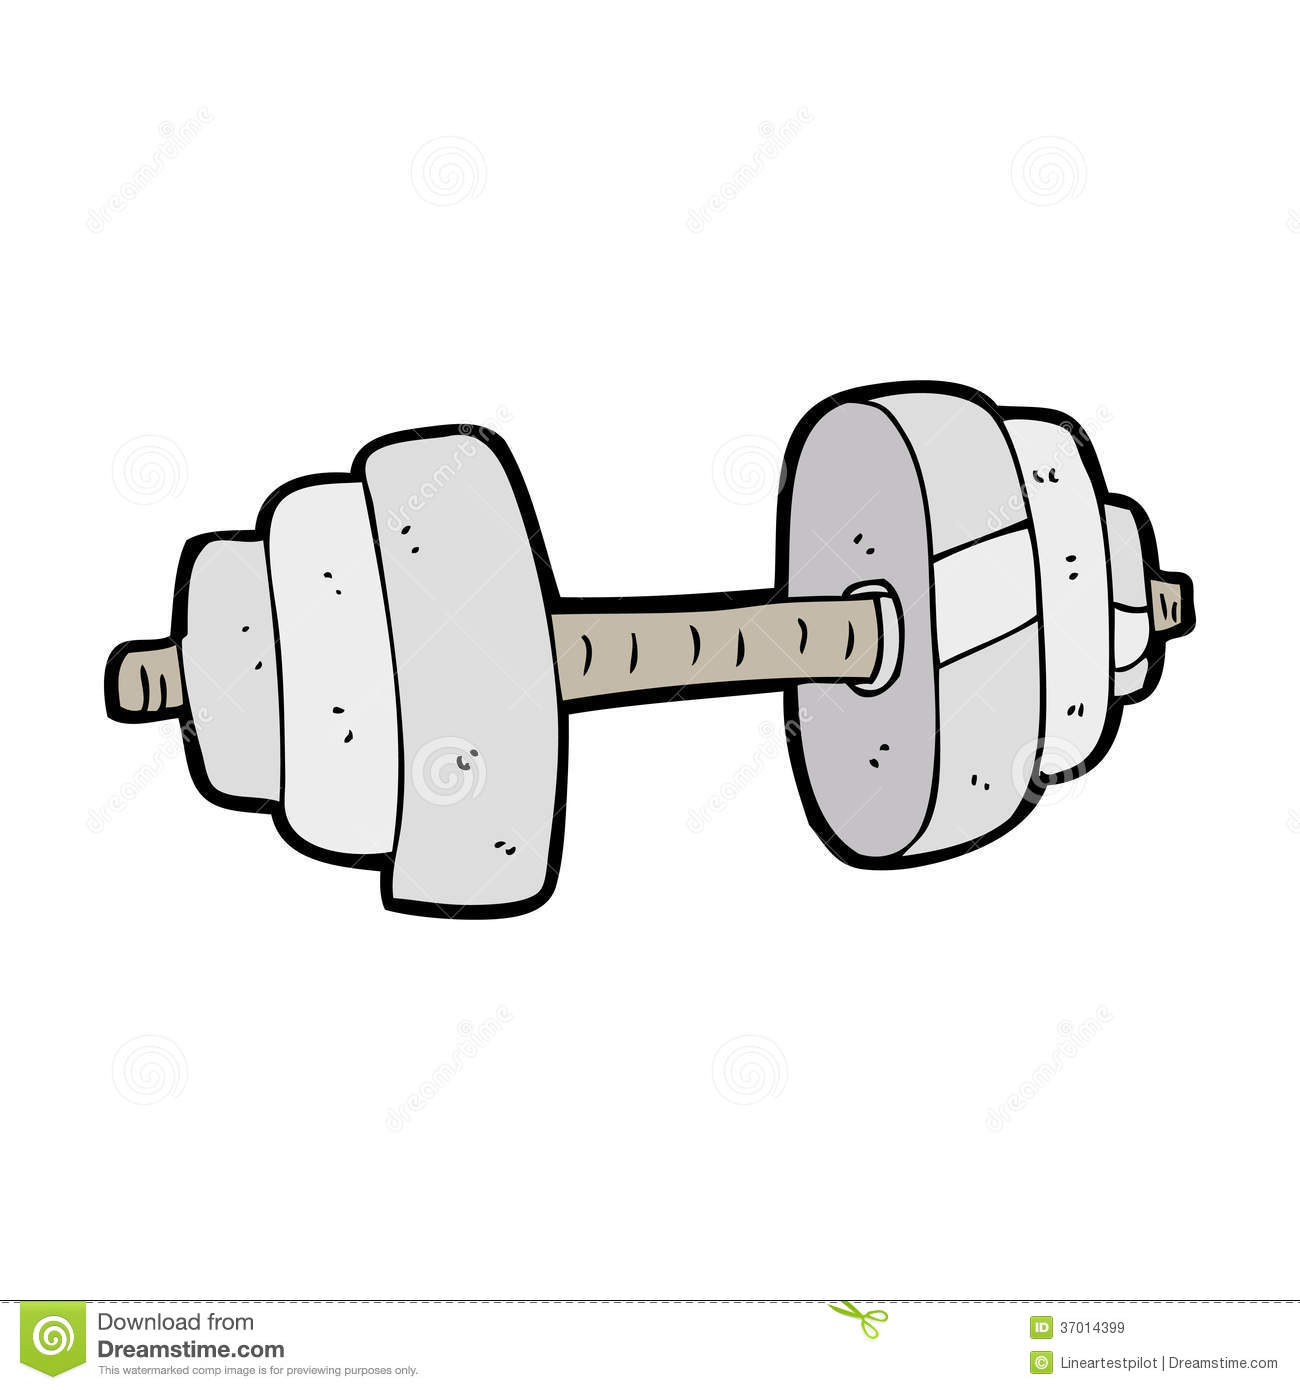 Cartoon dumbbell stock vector. Illustration of silly ...